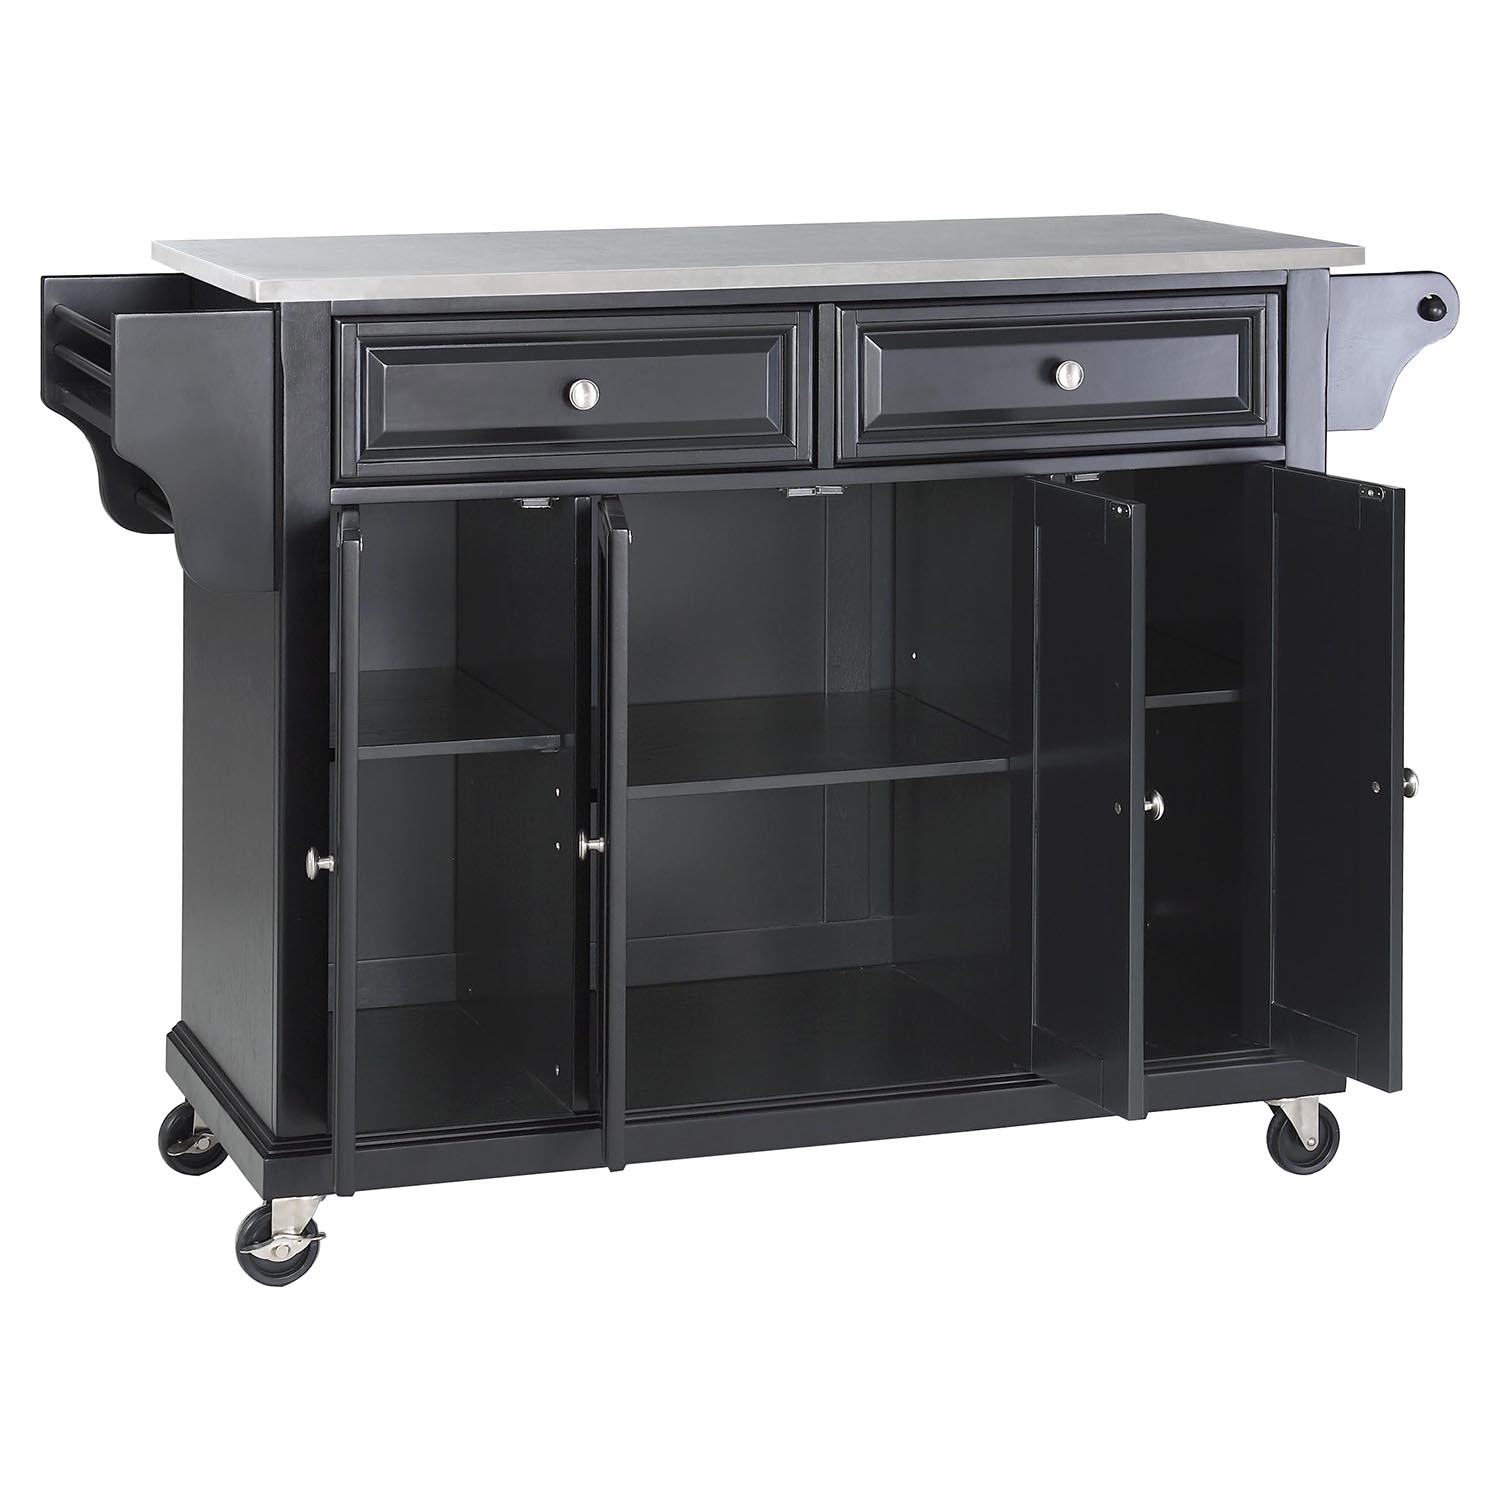 Stainless Steel Top Kitchen Cart/Island